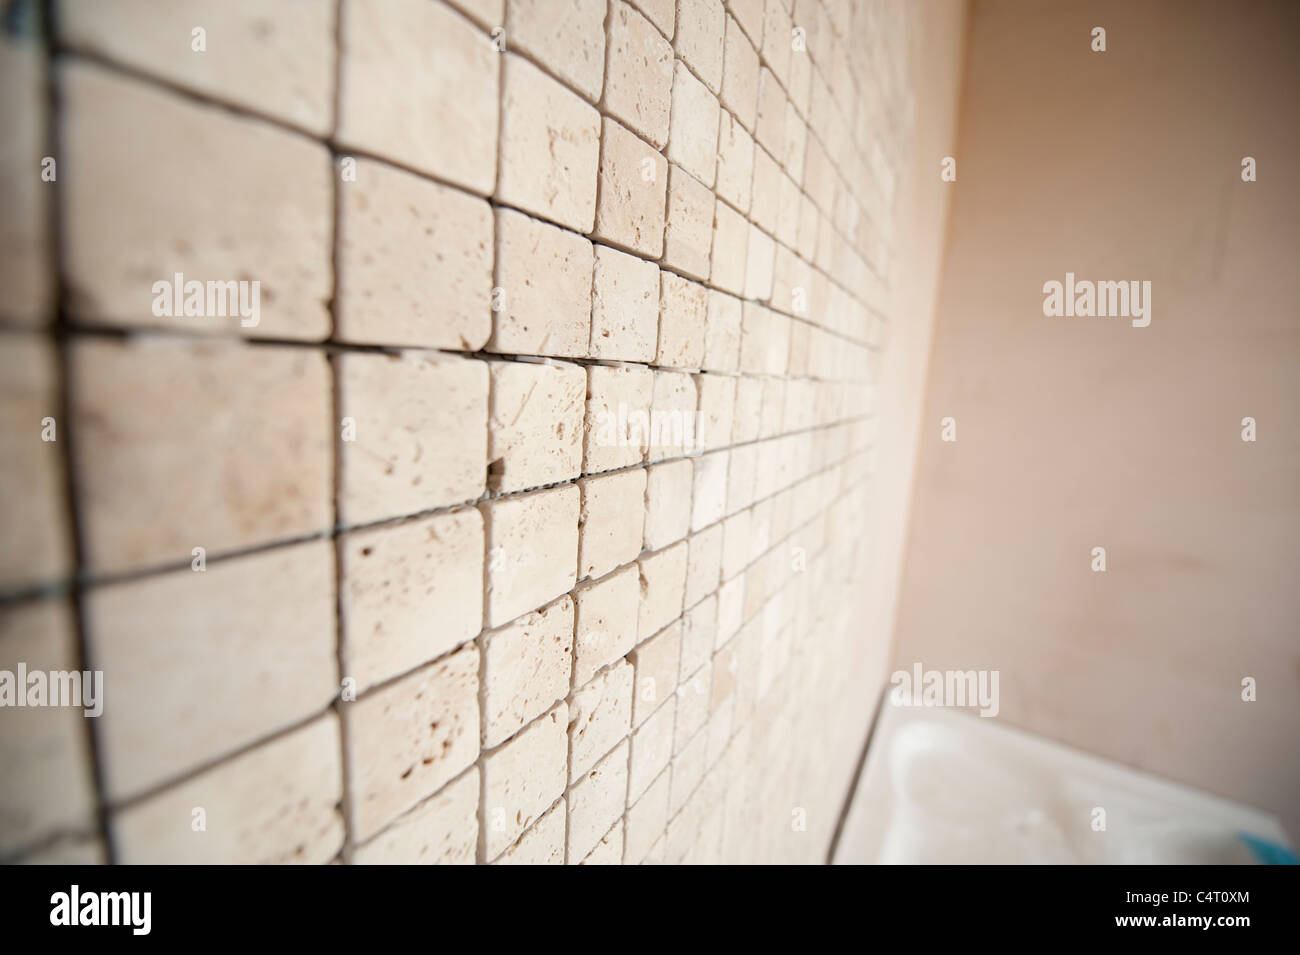 Tiling a bathroom walls with natural Travertine mosaic Stock Photo ...